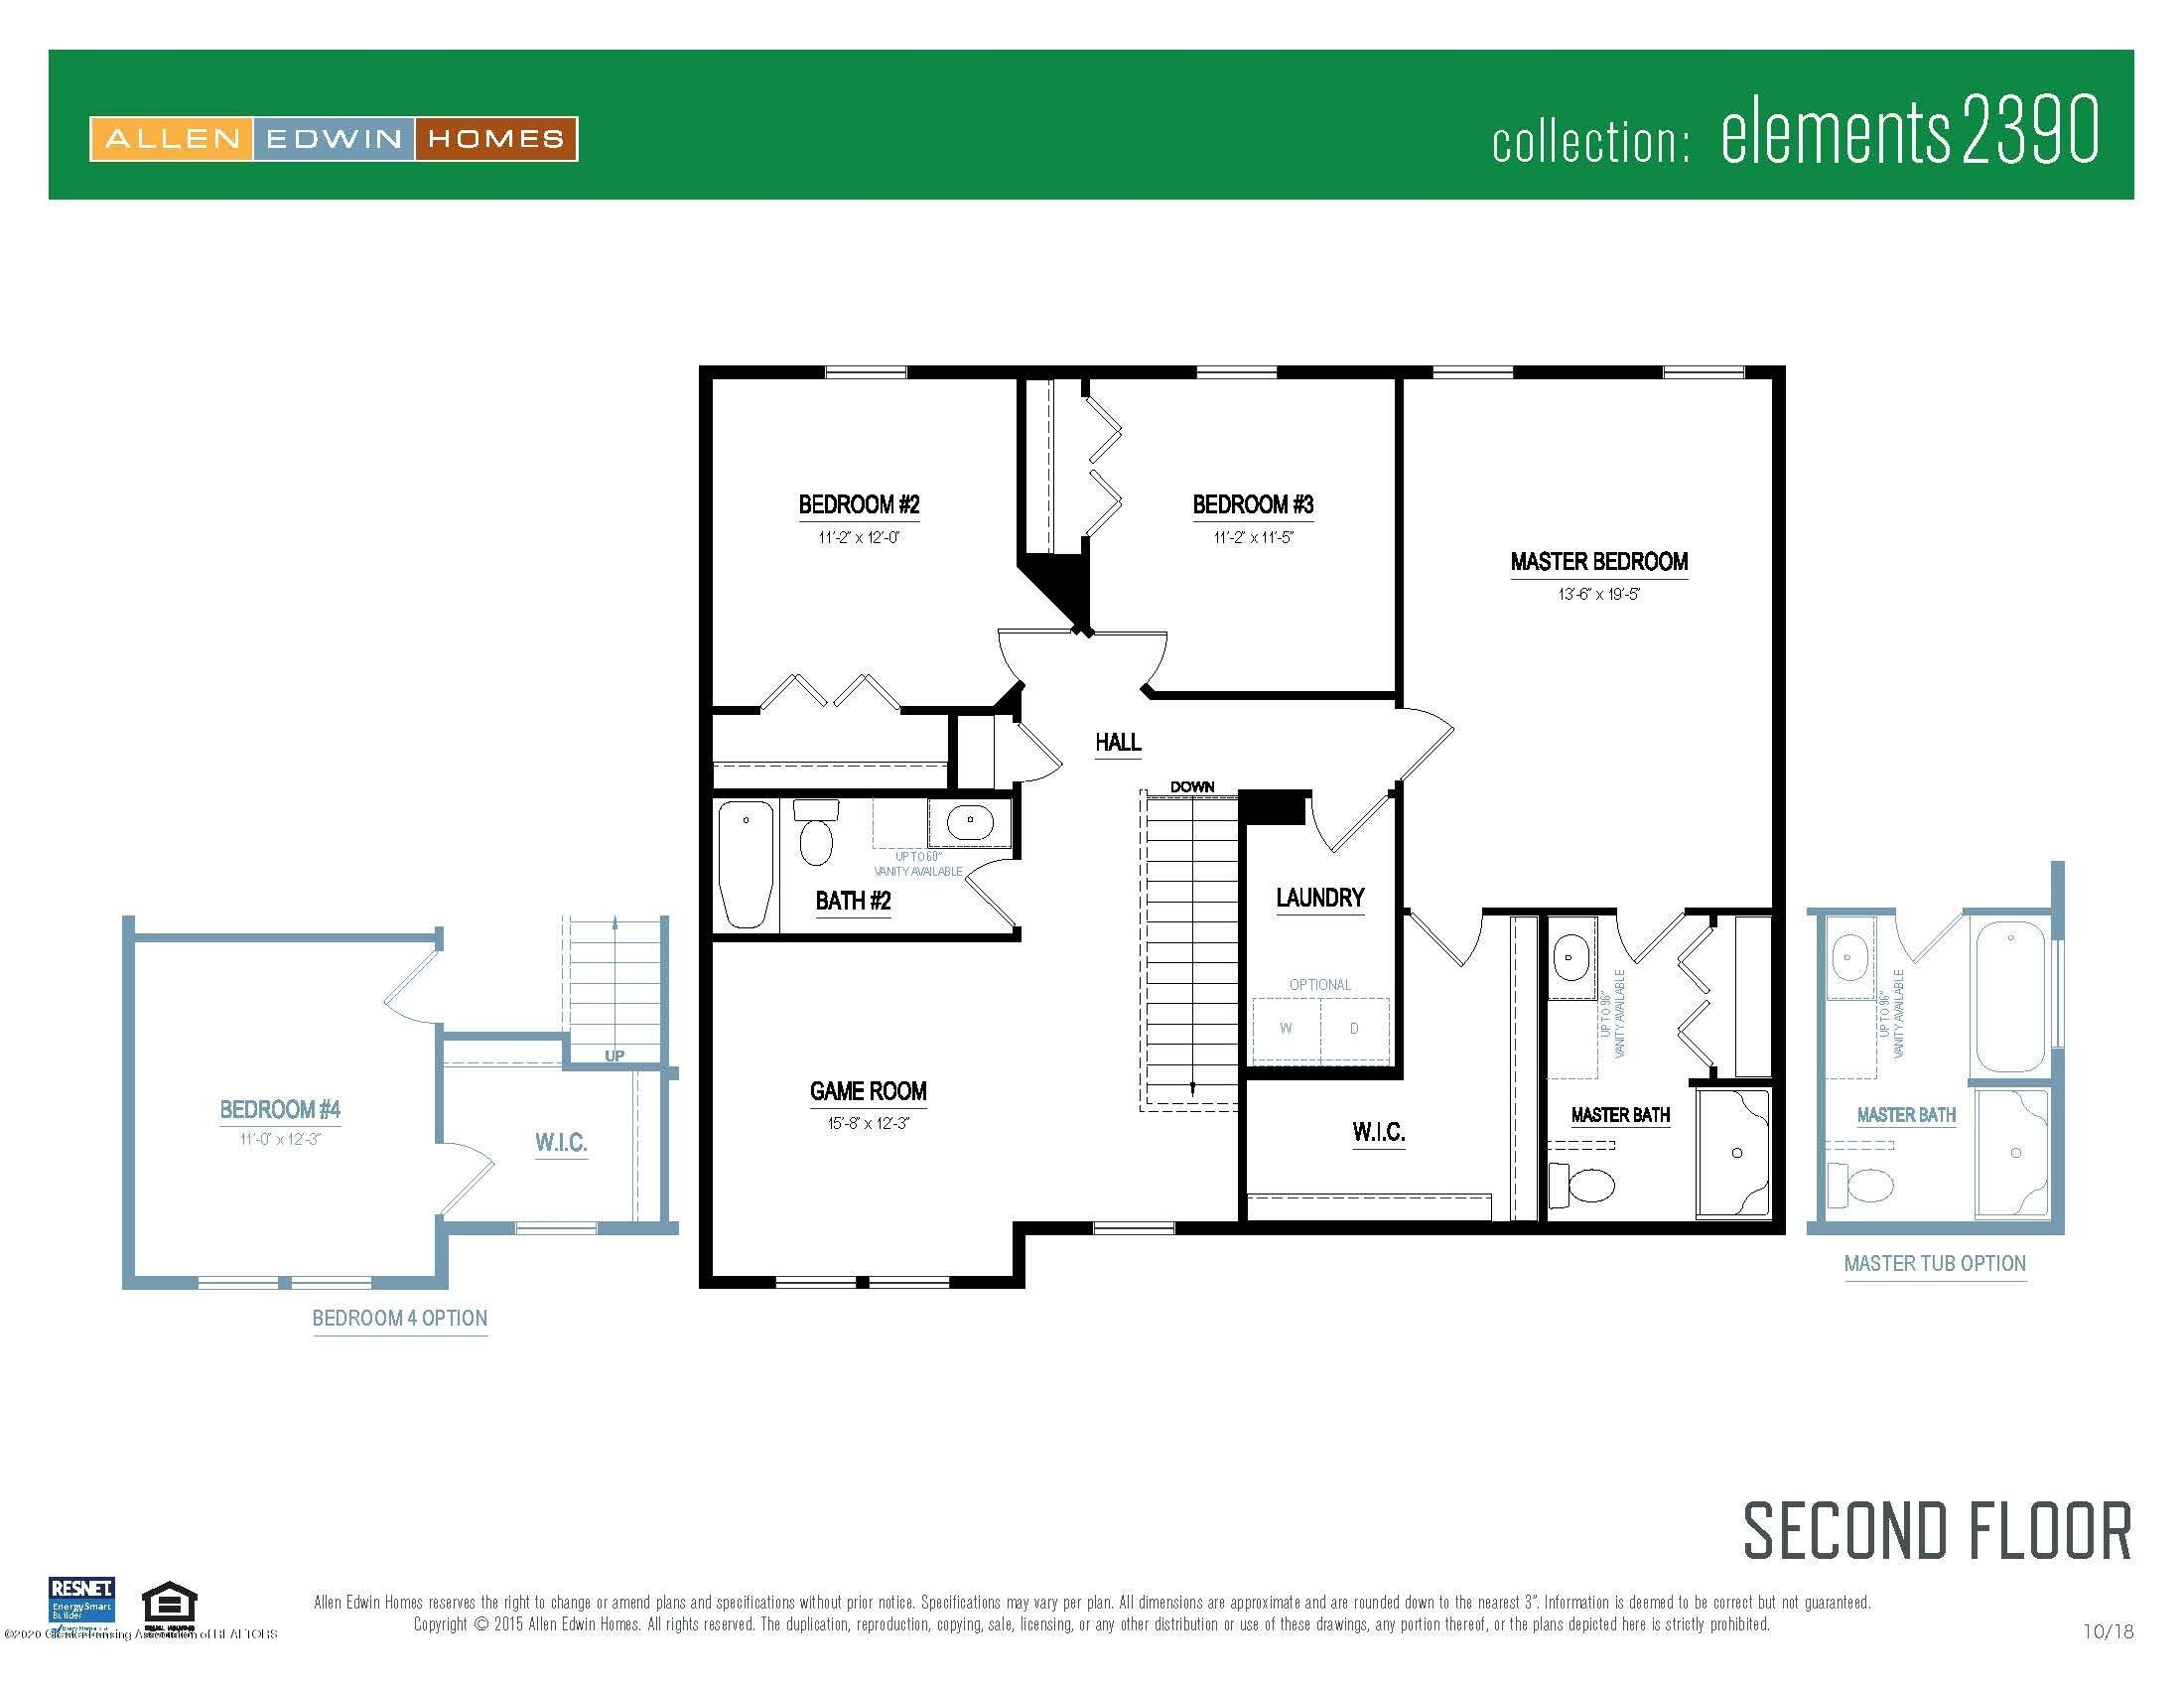 6472 Firefly Dr - Elements 2390 V8.0a Second Floor - 22